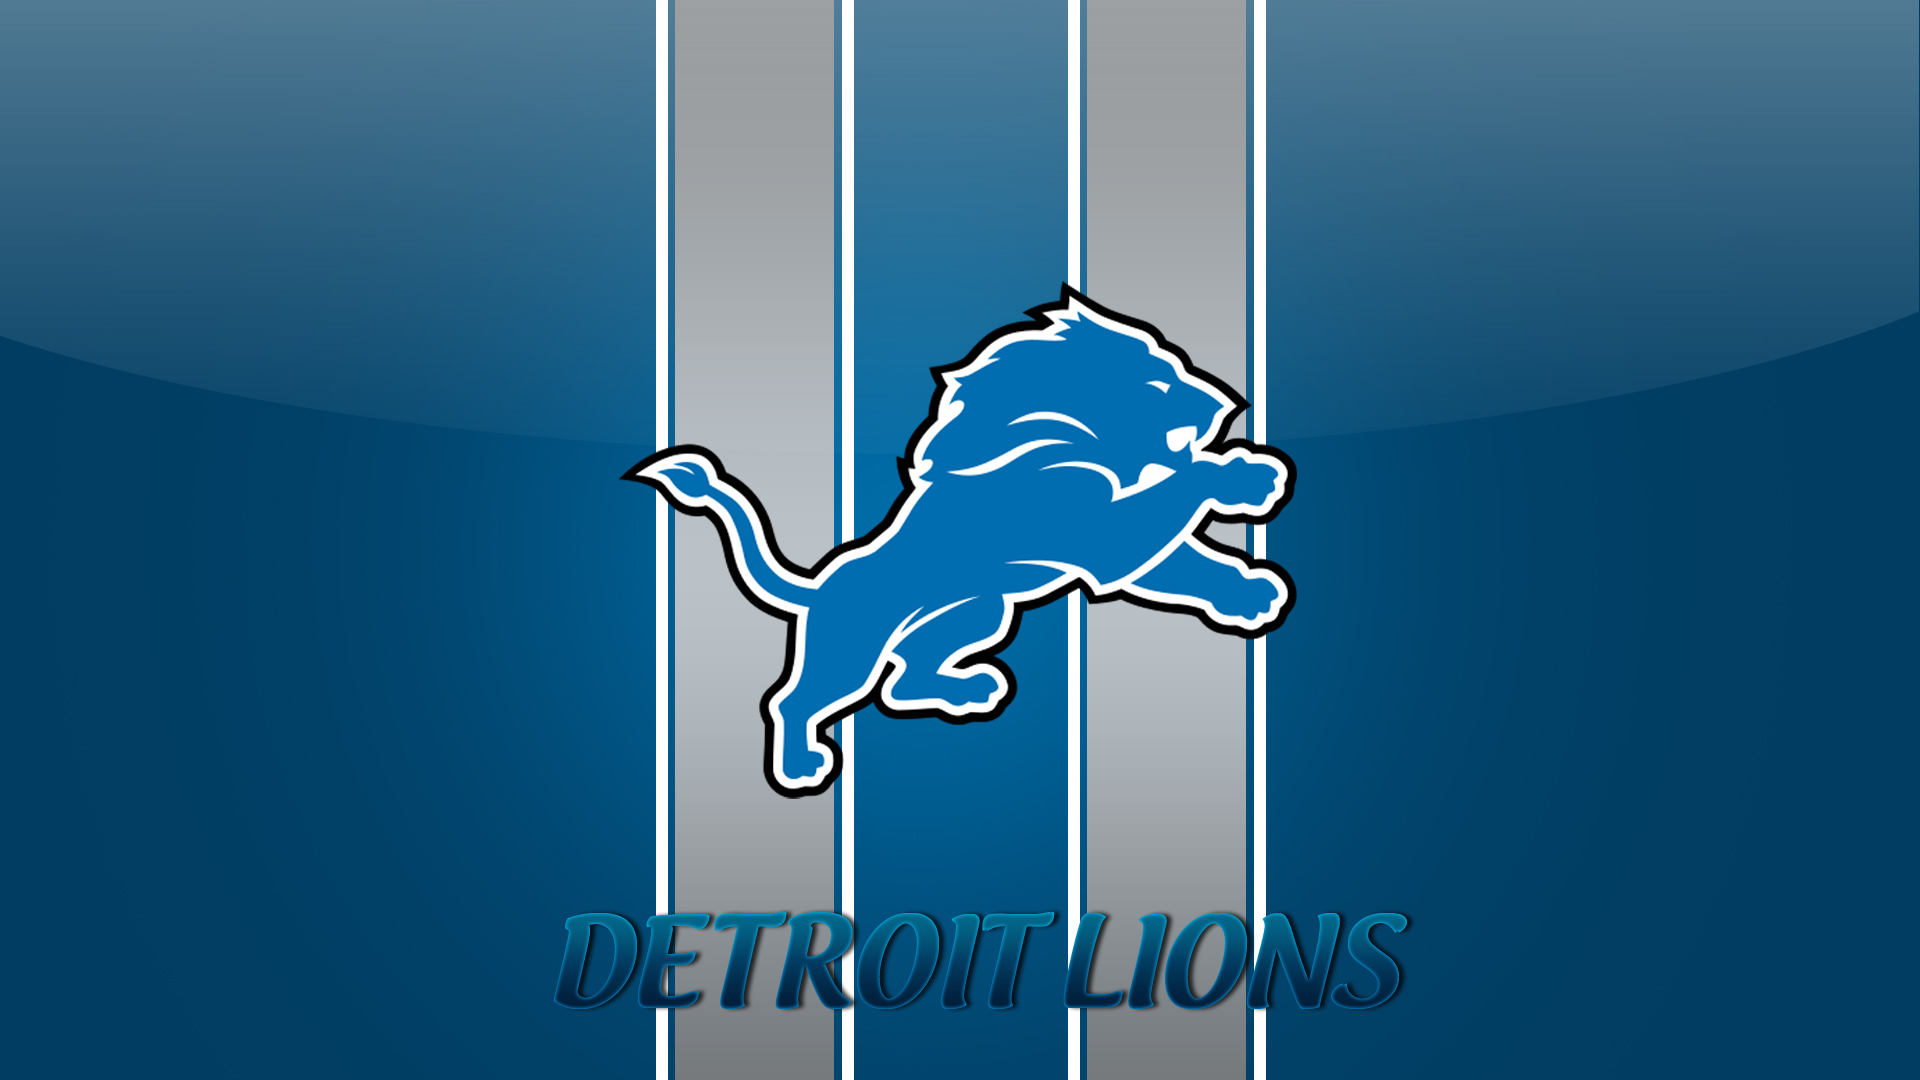 Detroit Lions HD Wallpaper Detroit Lions HD Wallpaper-1 ...